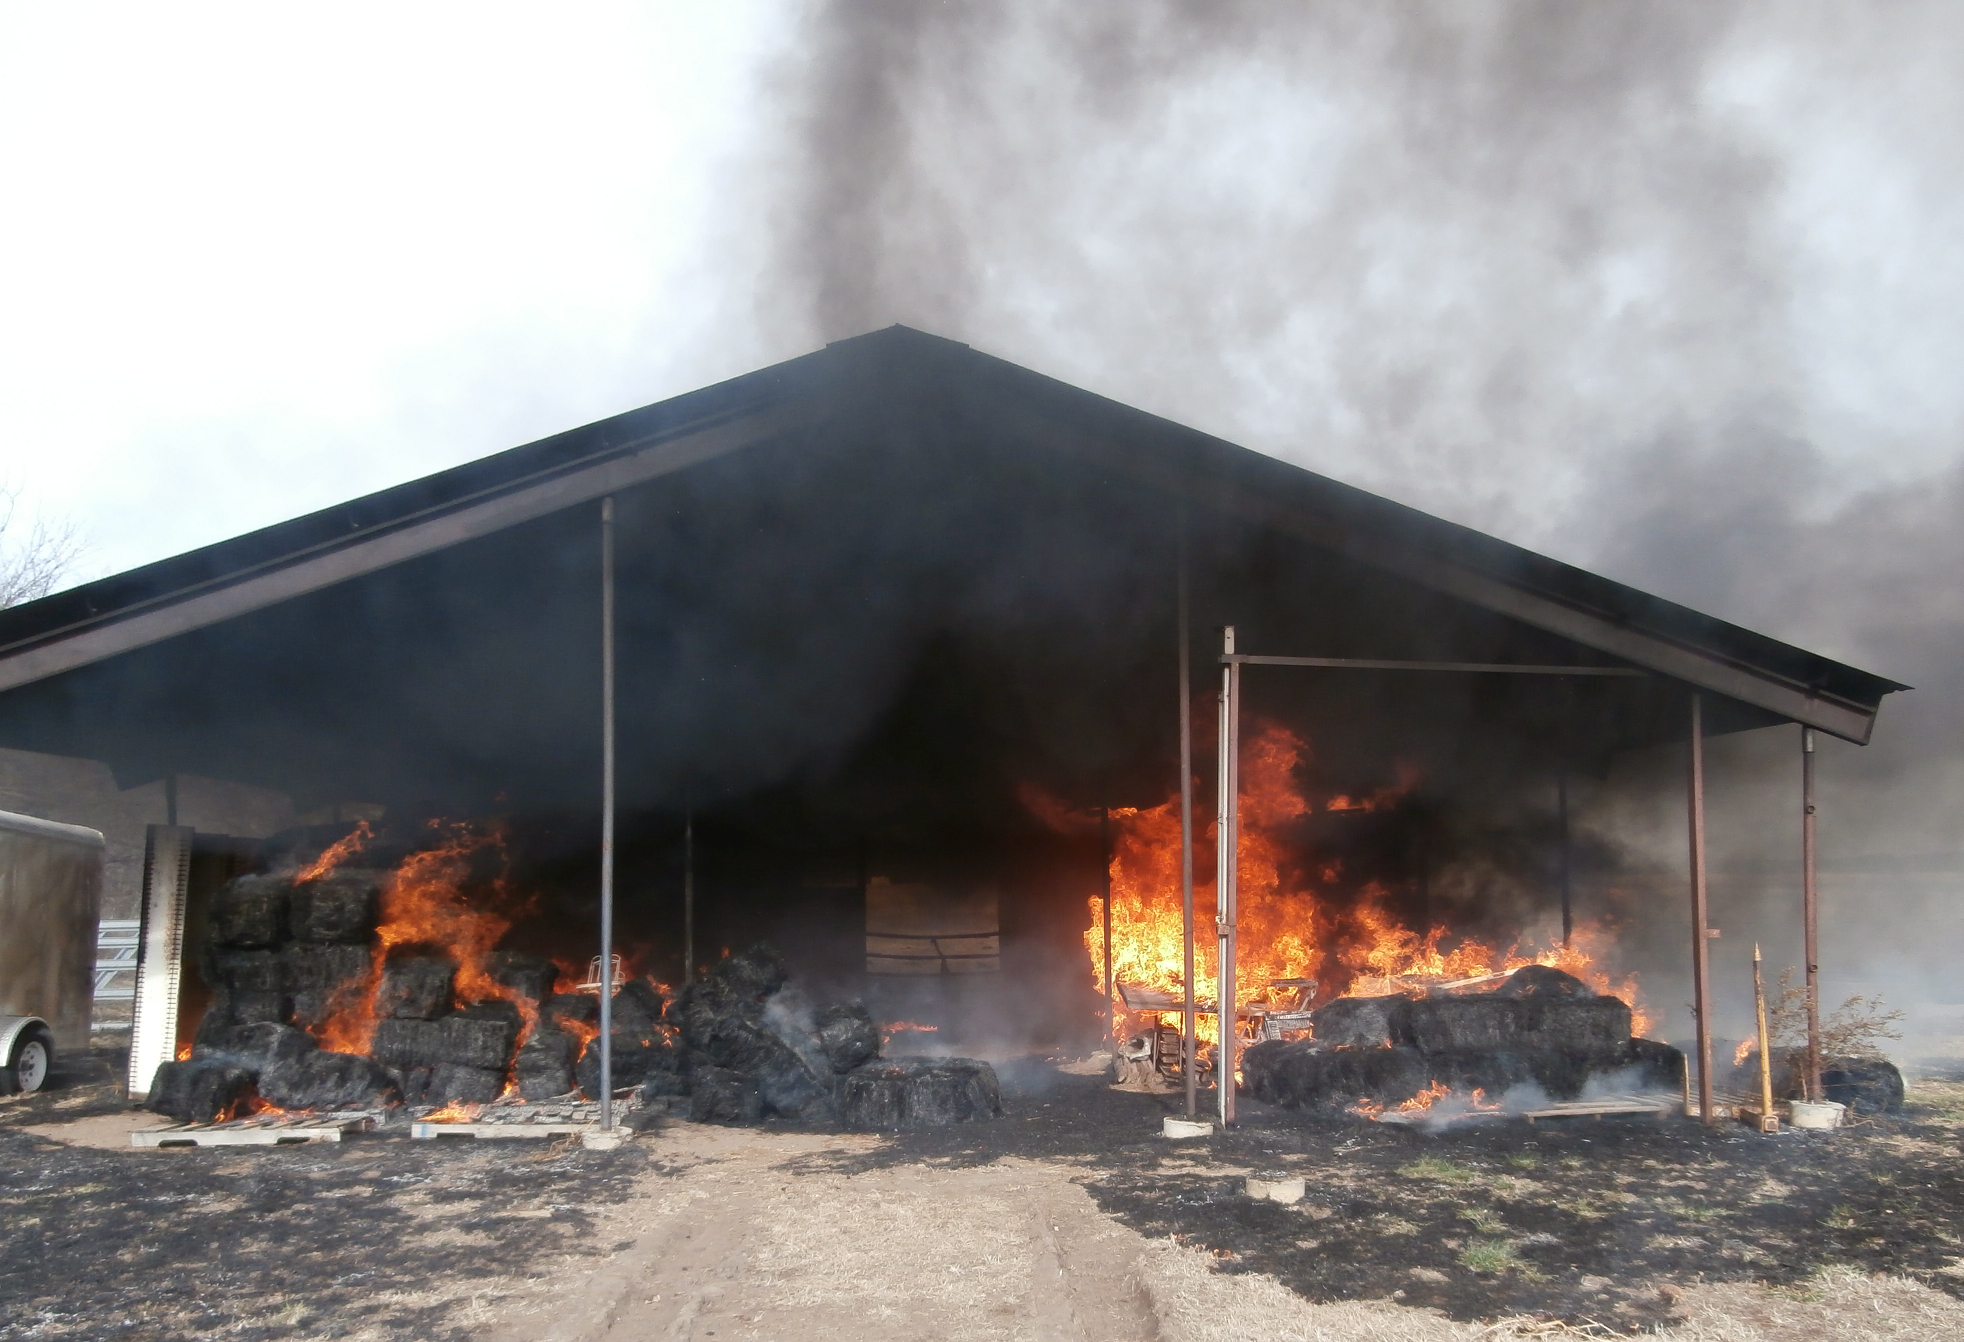 Barn Fire Leaves Irreplaceable Damage